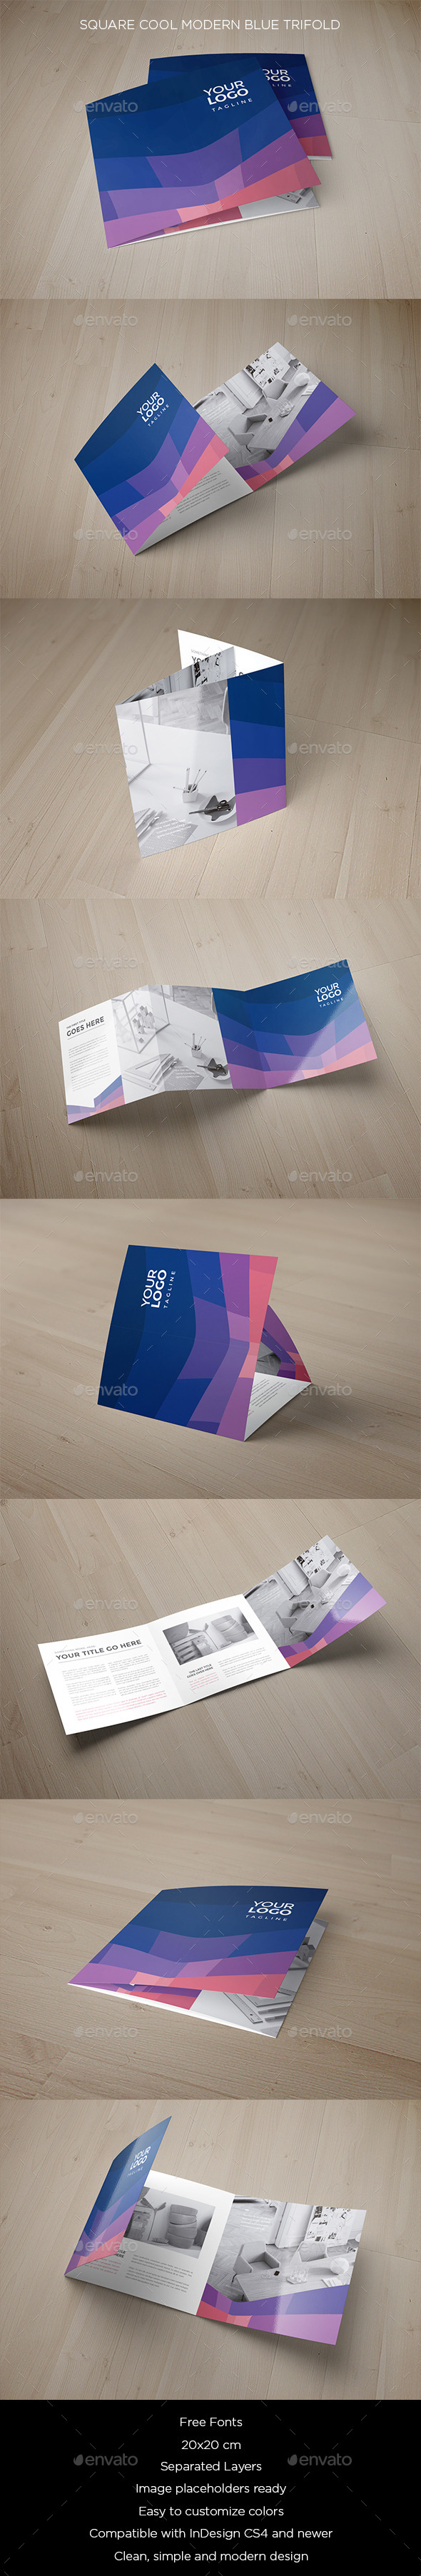 Square Cool Modern Blue Trifold - Brochures Print Templates